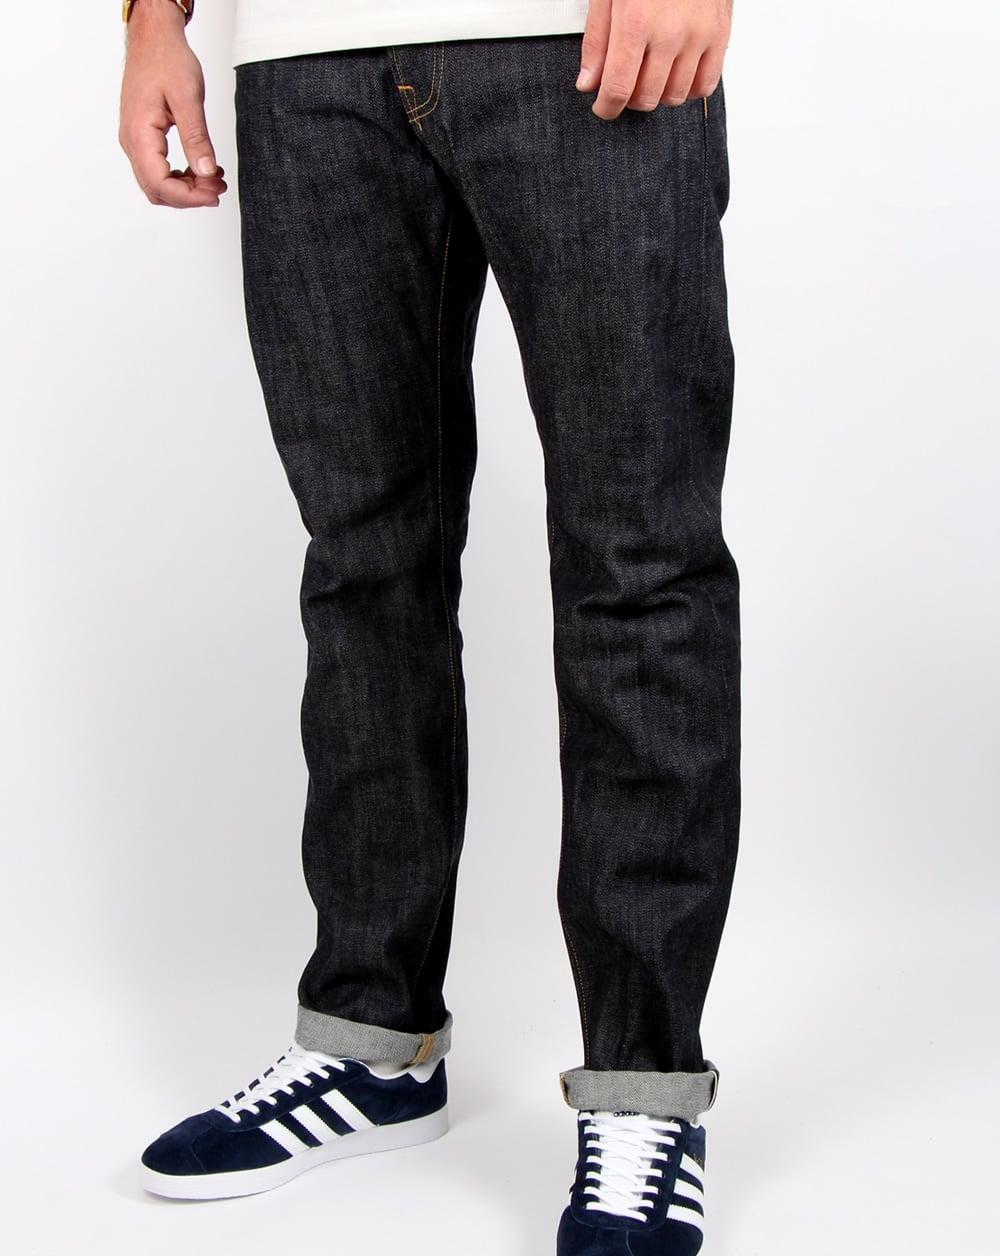 da3e9511 Edwin Ed-55 Selvage Jeans Red Listed Unwashed - Jeans & Cords from ...